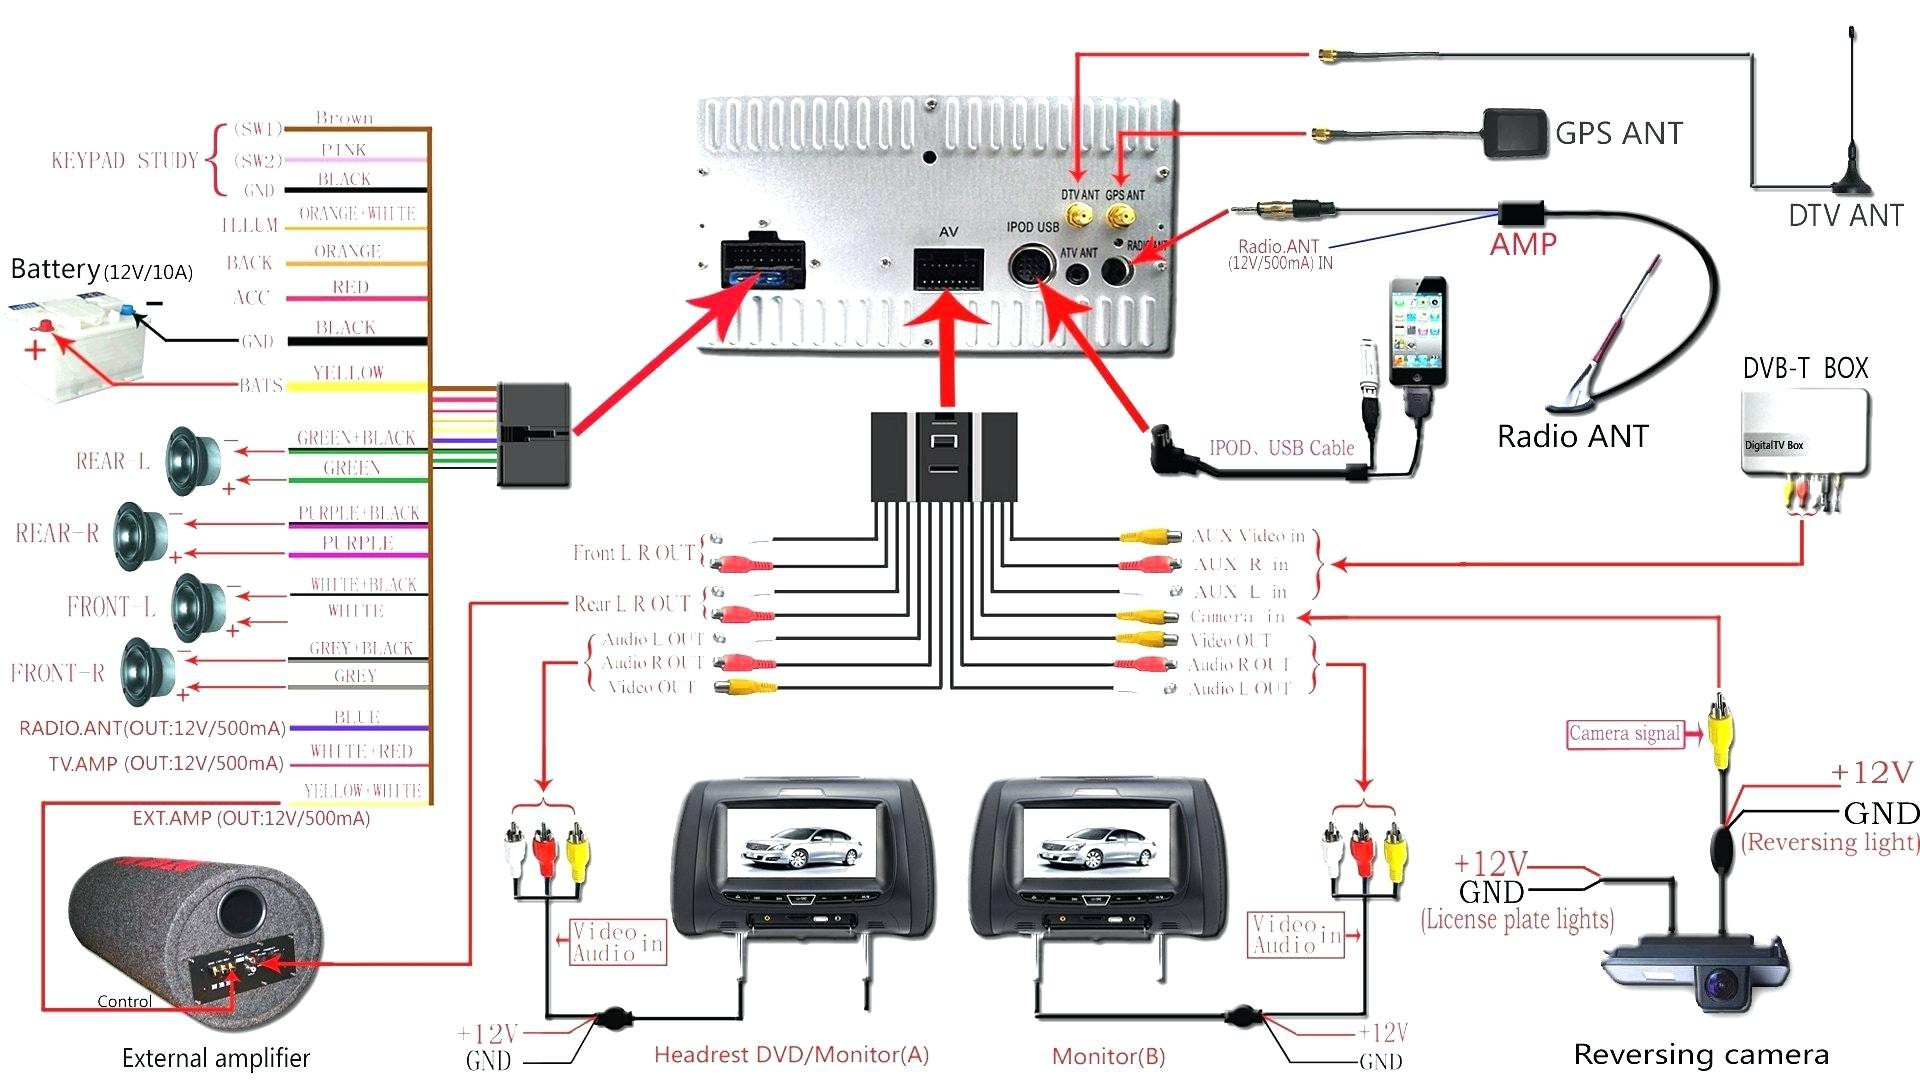 At Amp T Uverse Wiring Diagram Diagram Base Website Wiring Diagram -  VENNDIAGRAMCLIPART.FORTUNEBAND.FRDiagram Base Website Full Edition - The Best and Completed Full Edition of  Diagram Database Website You Can Find in The Internet